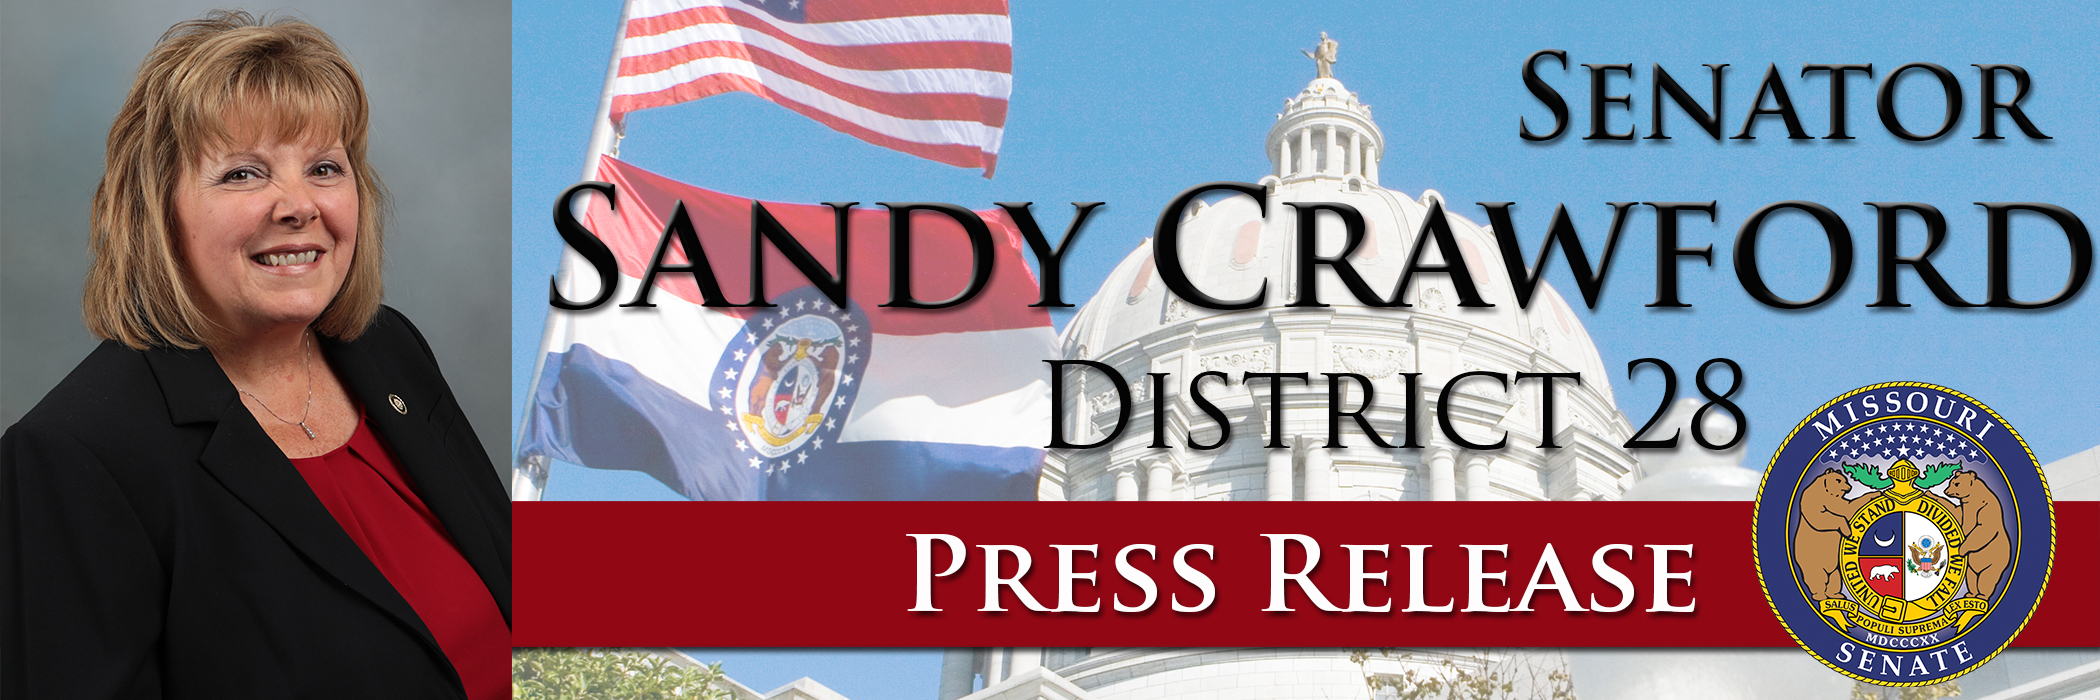 Crawford - Press Release Banner - 091317